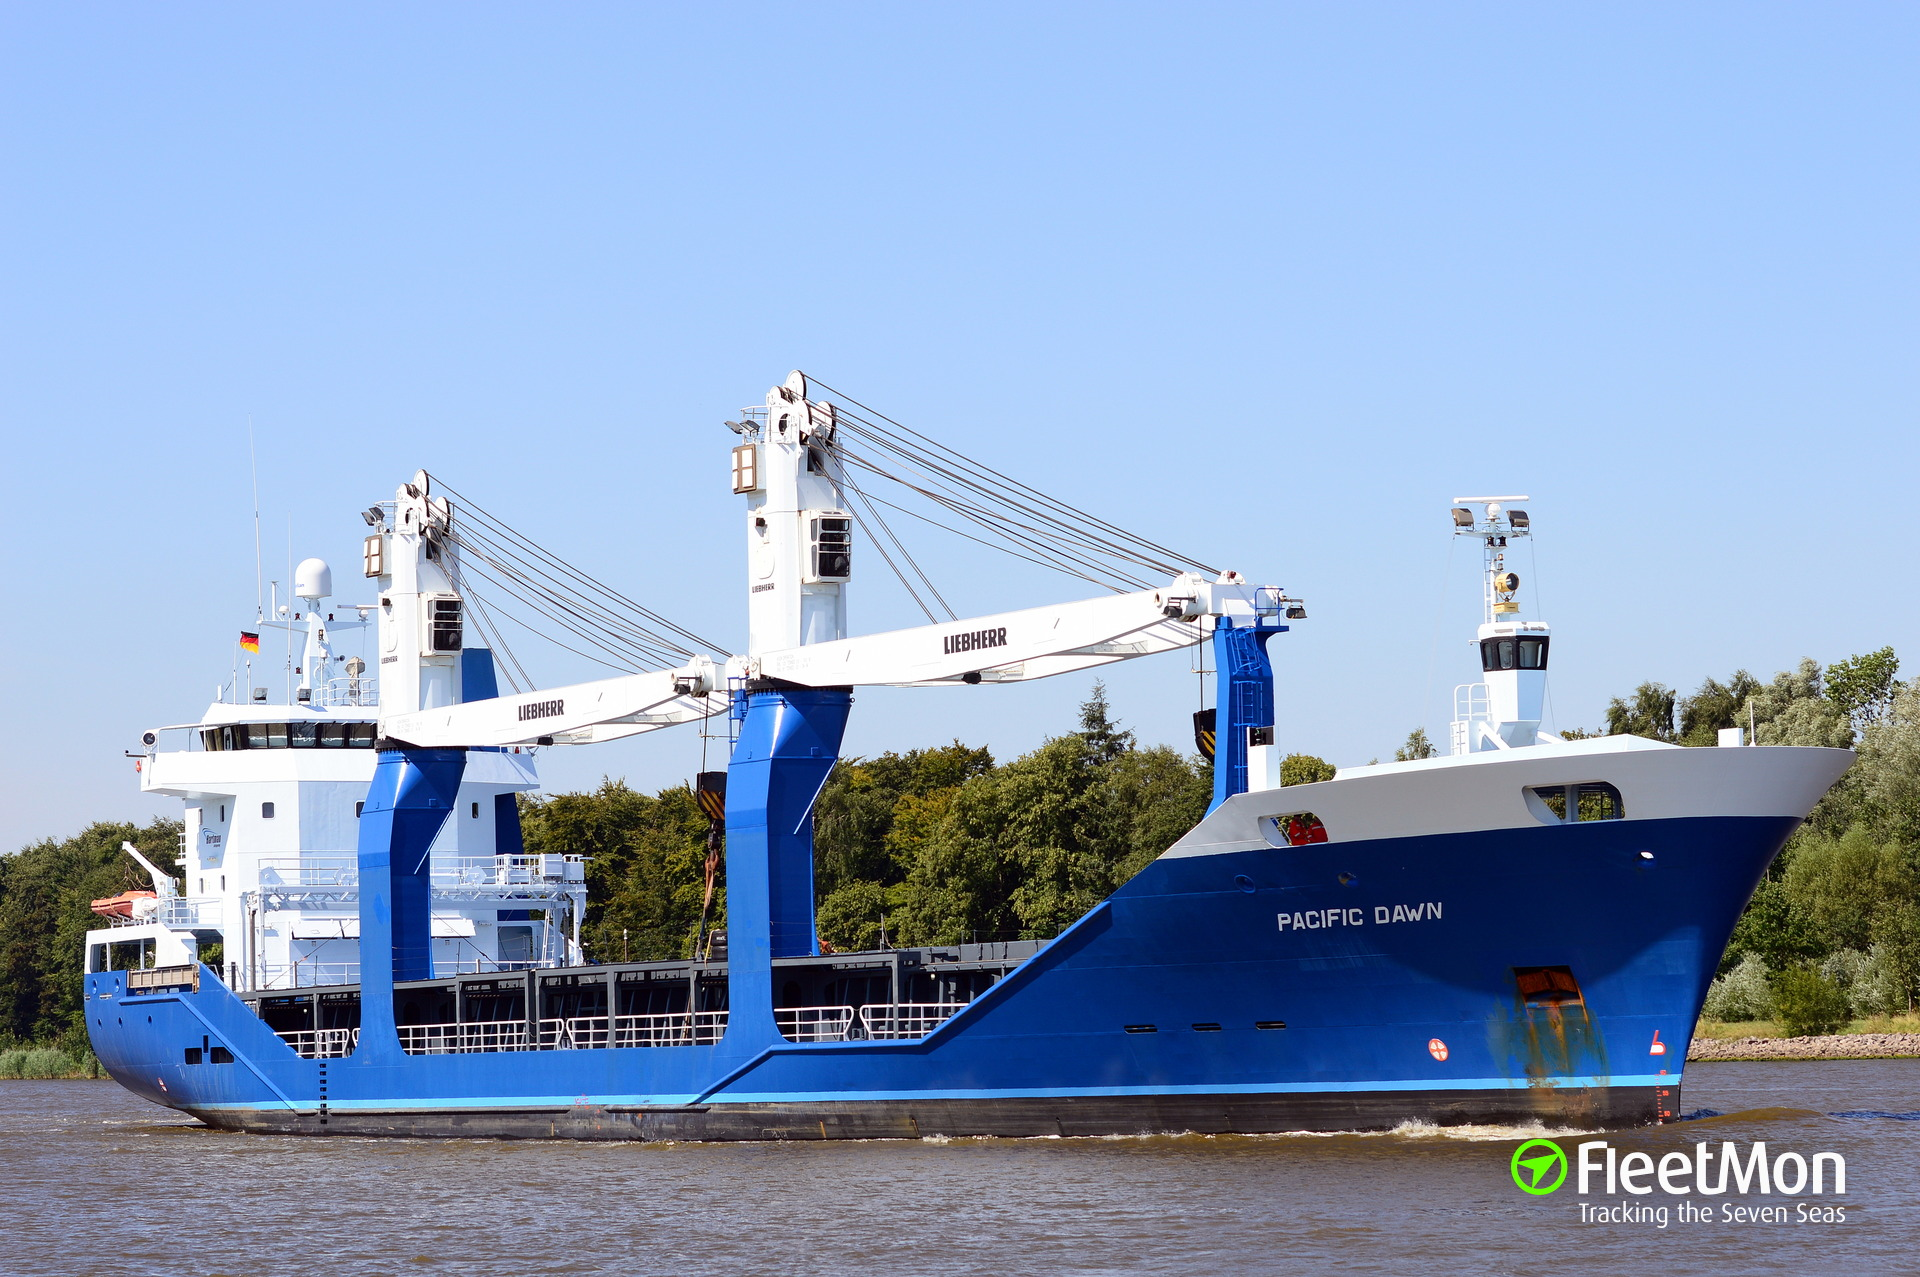 PACIFIC DAWN troubled off Harlingen